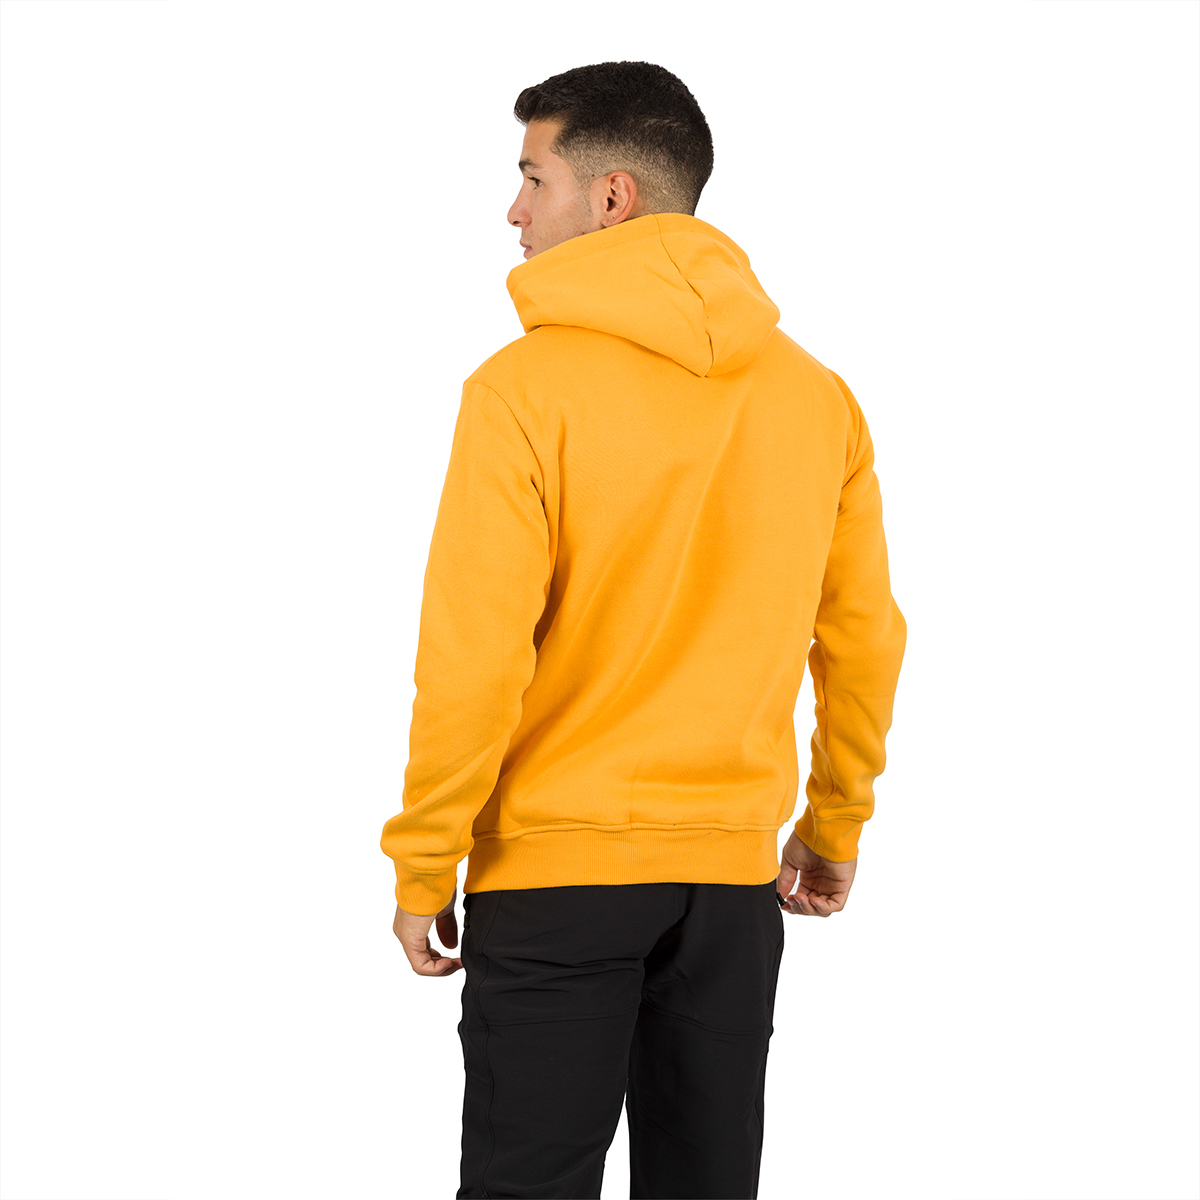 MAN'S BERNIA  PULLOVER YELLOW